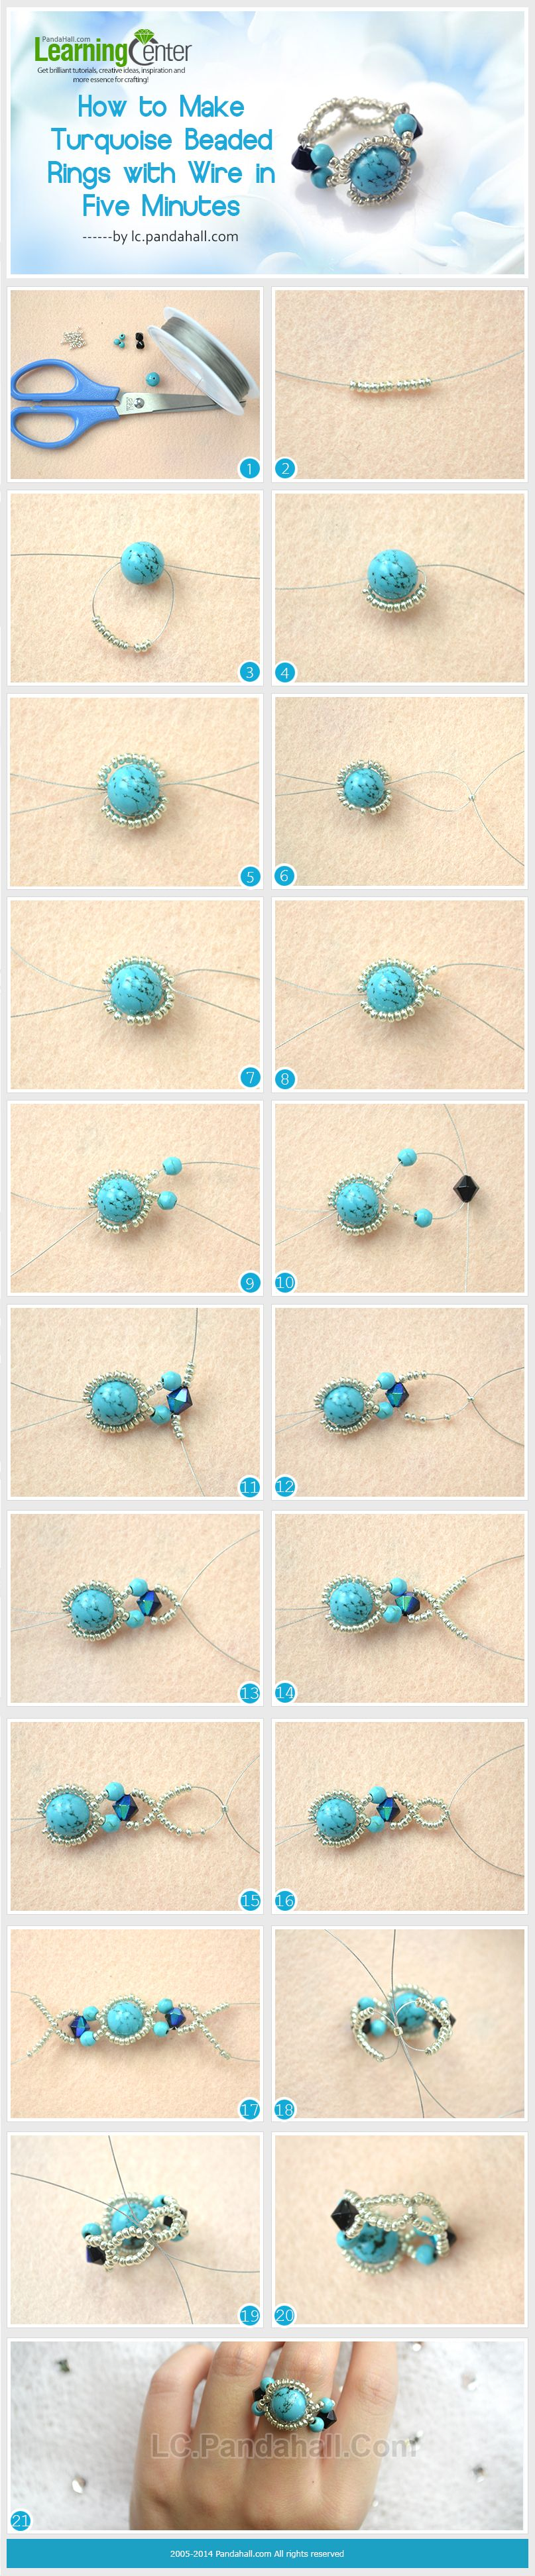 How to Make Turquoise Beaded Rings with Wire in Five Minutes